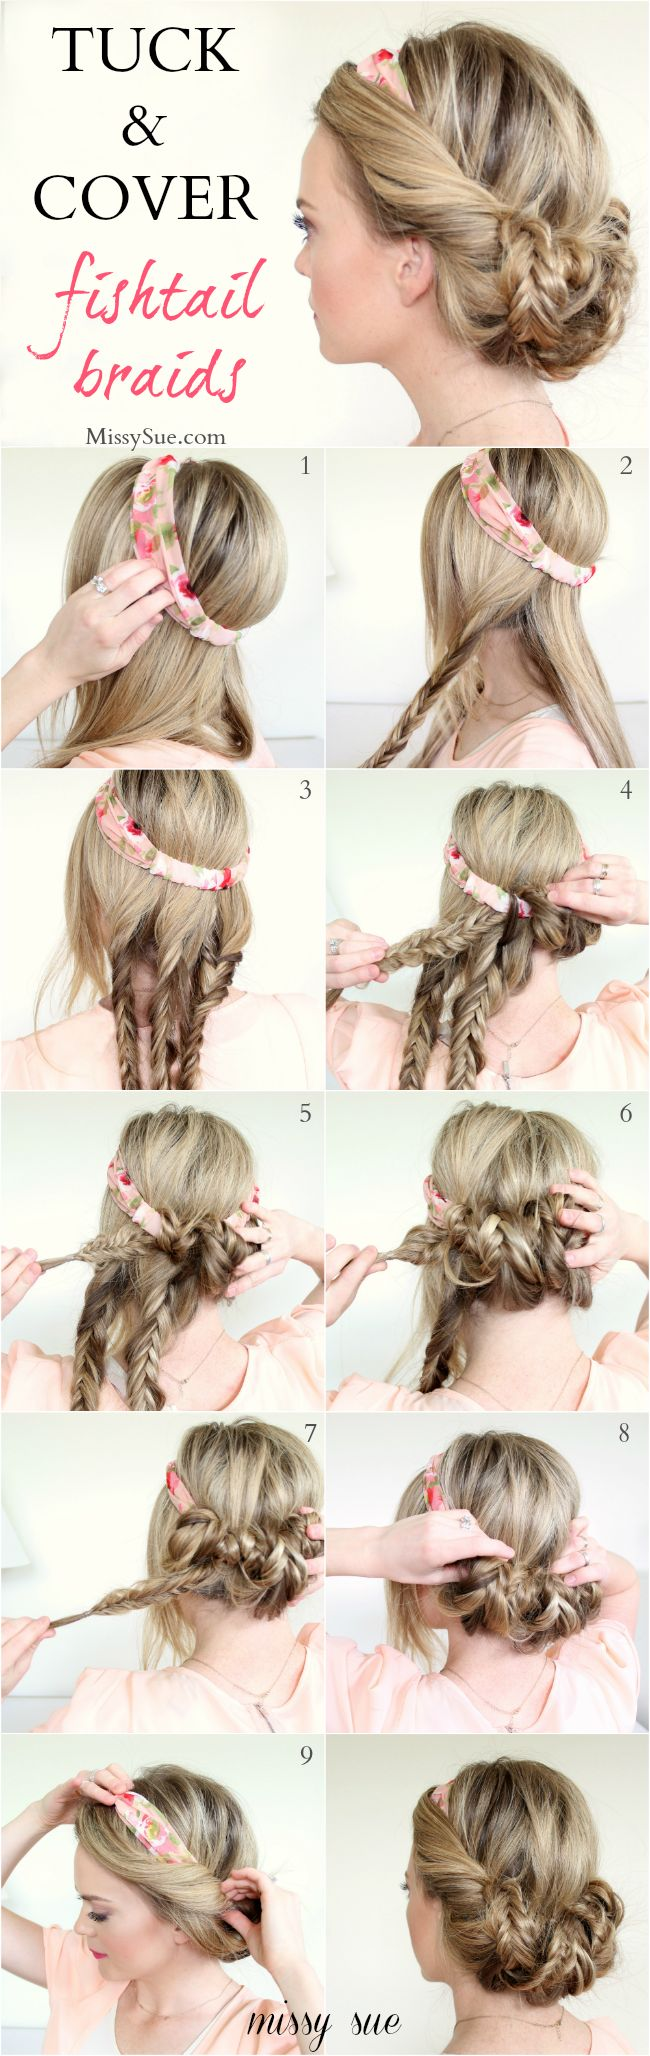 102523-Diy-Tuck-And-Cover-Fishtail-Braids